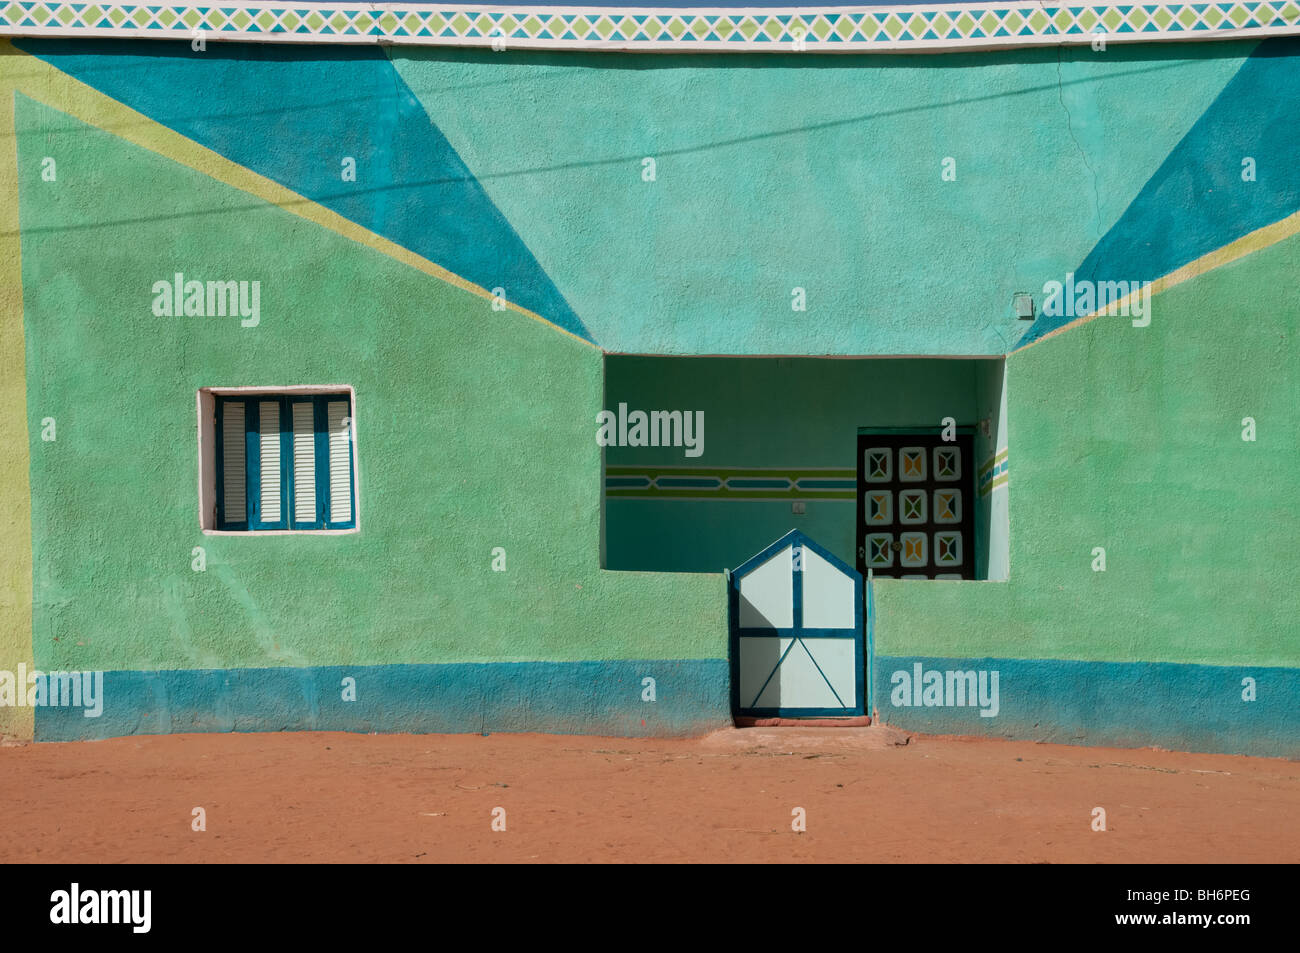 A colorful house in the desert village of Balat in Egypt's Dakhla Oasis. Stock Photo